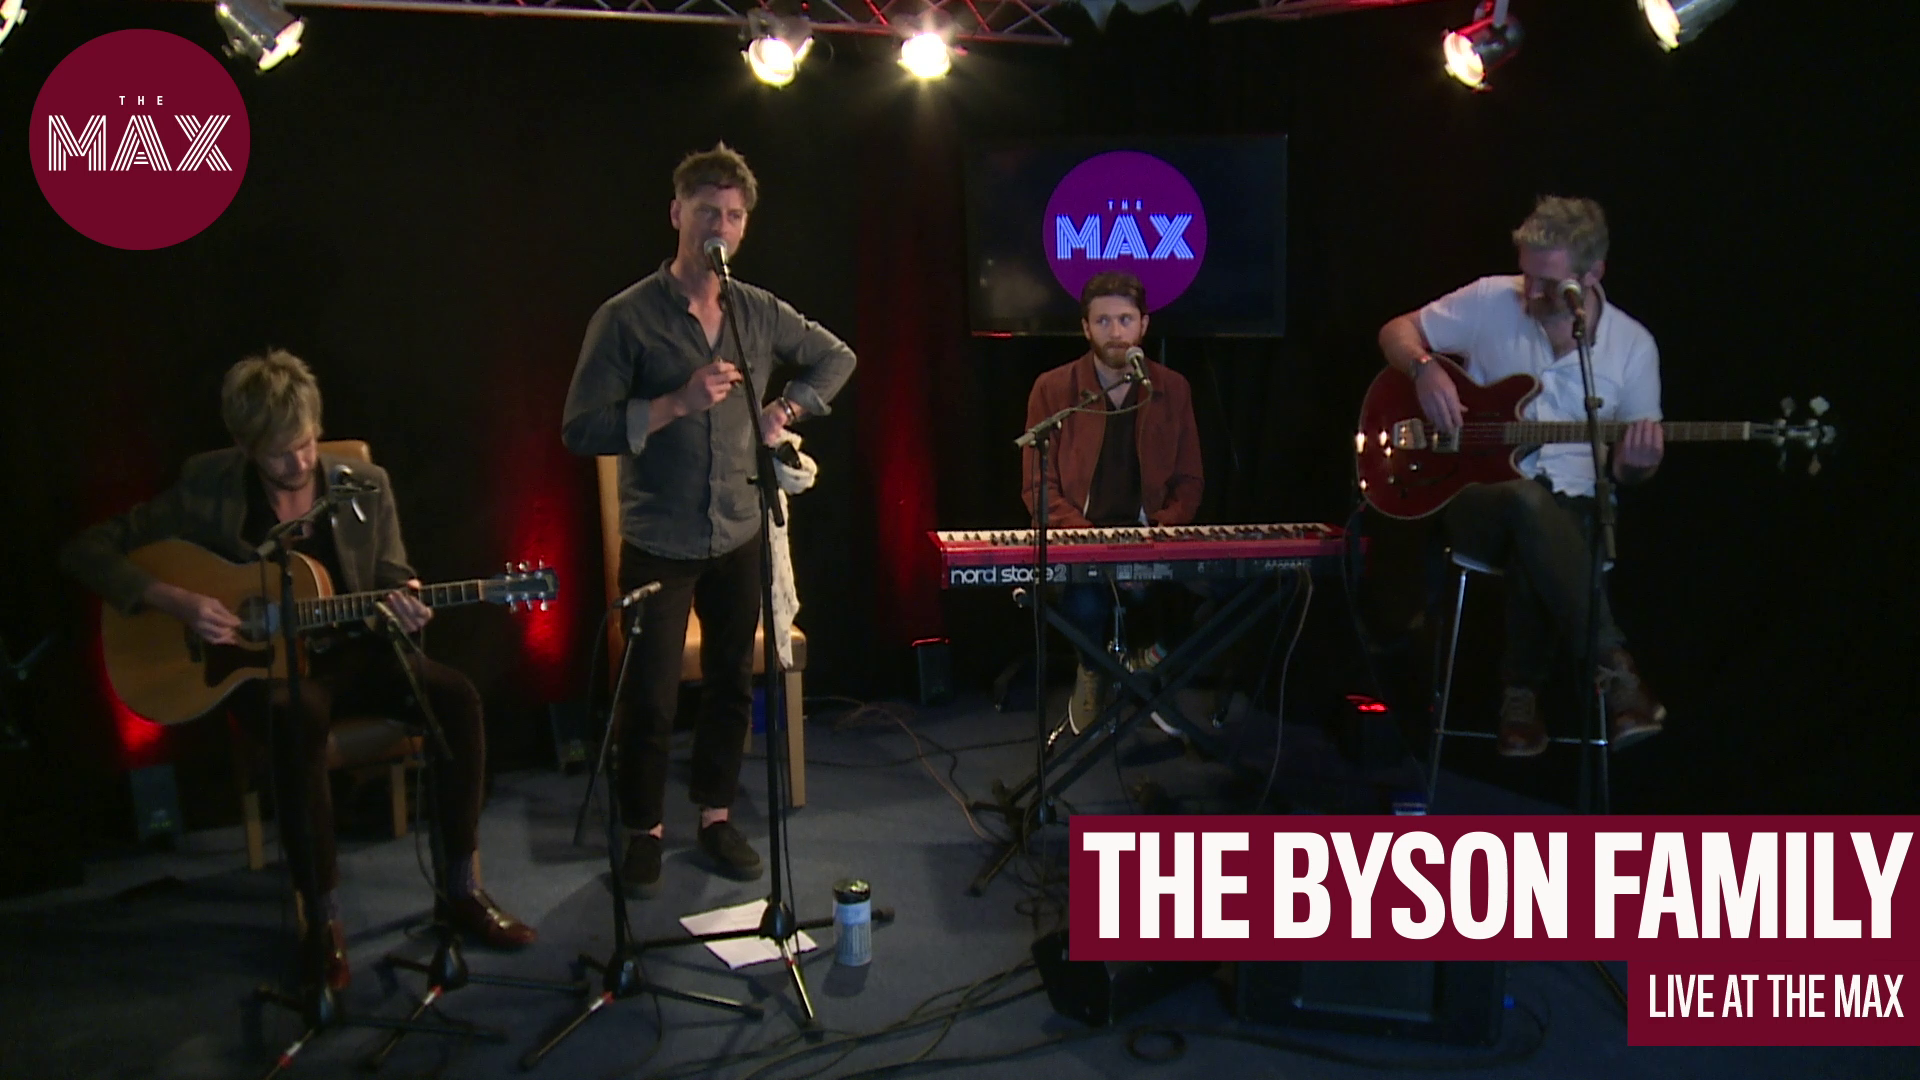 Live at The Max: The Byson Family - Angel of the Reckless